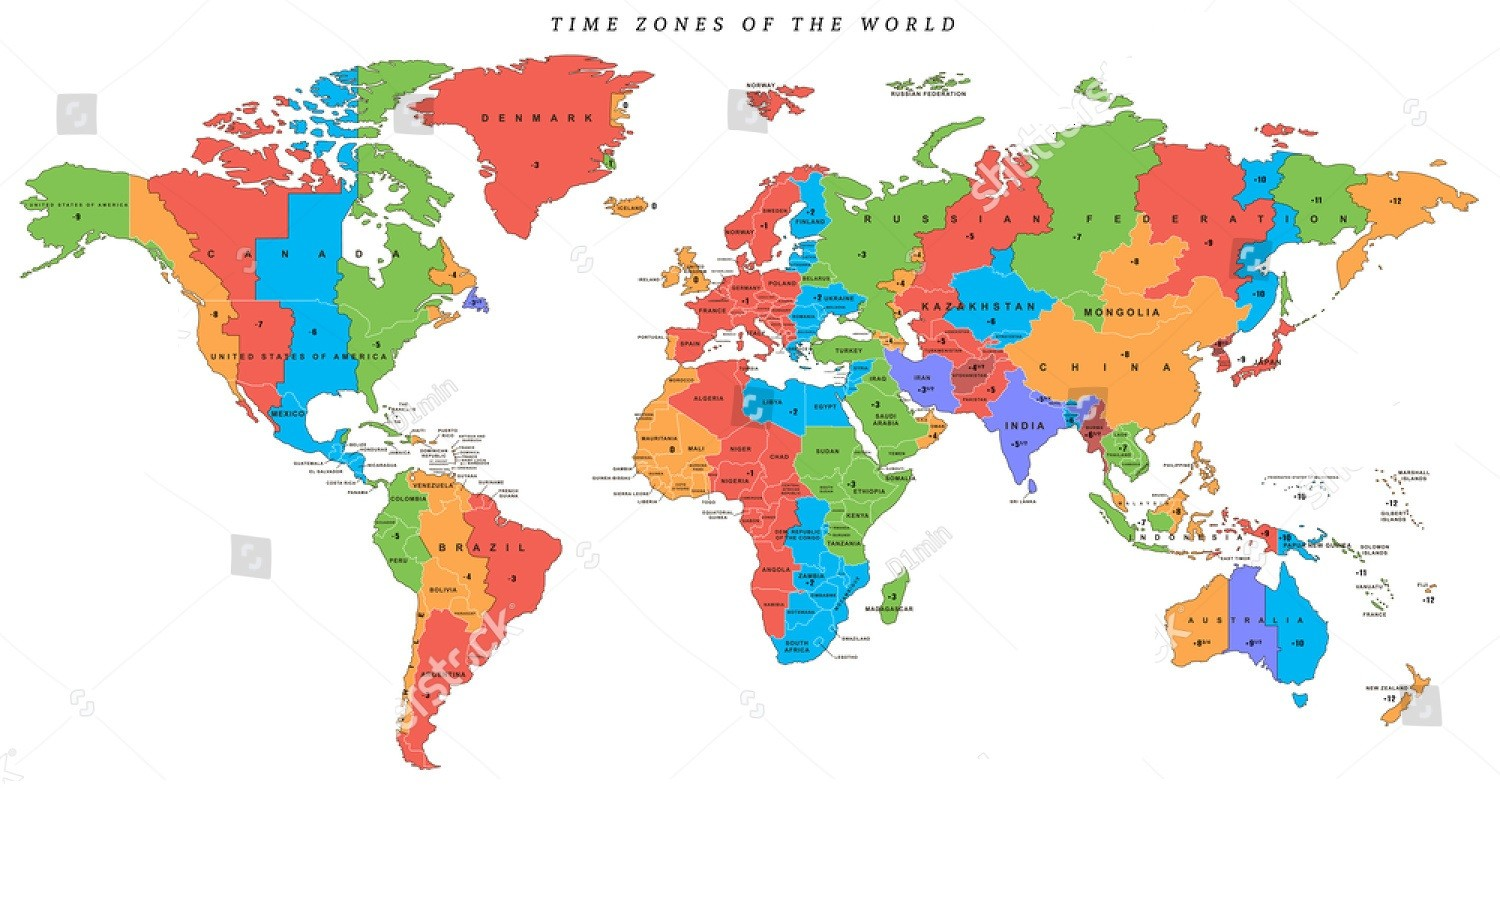 Printable World Time Zone Map,World Time Zone Map PDF